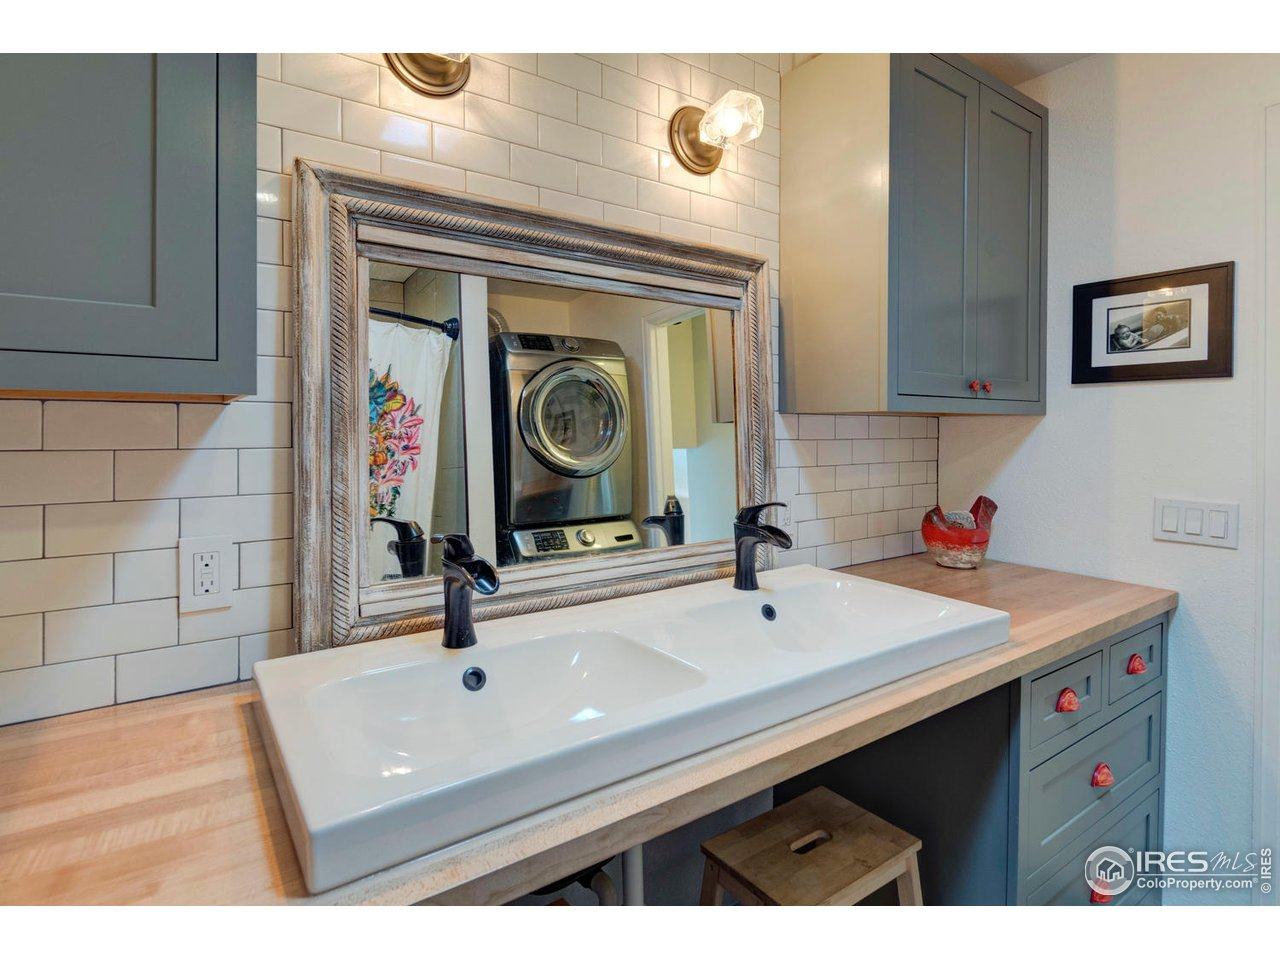 Double Sinks and Designer Fixtures